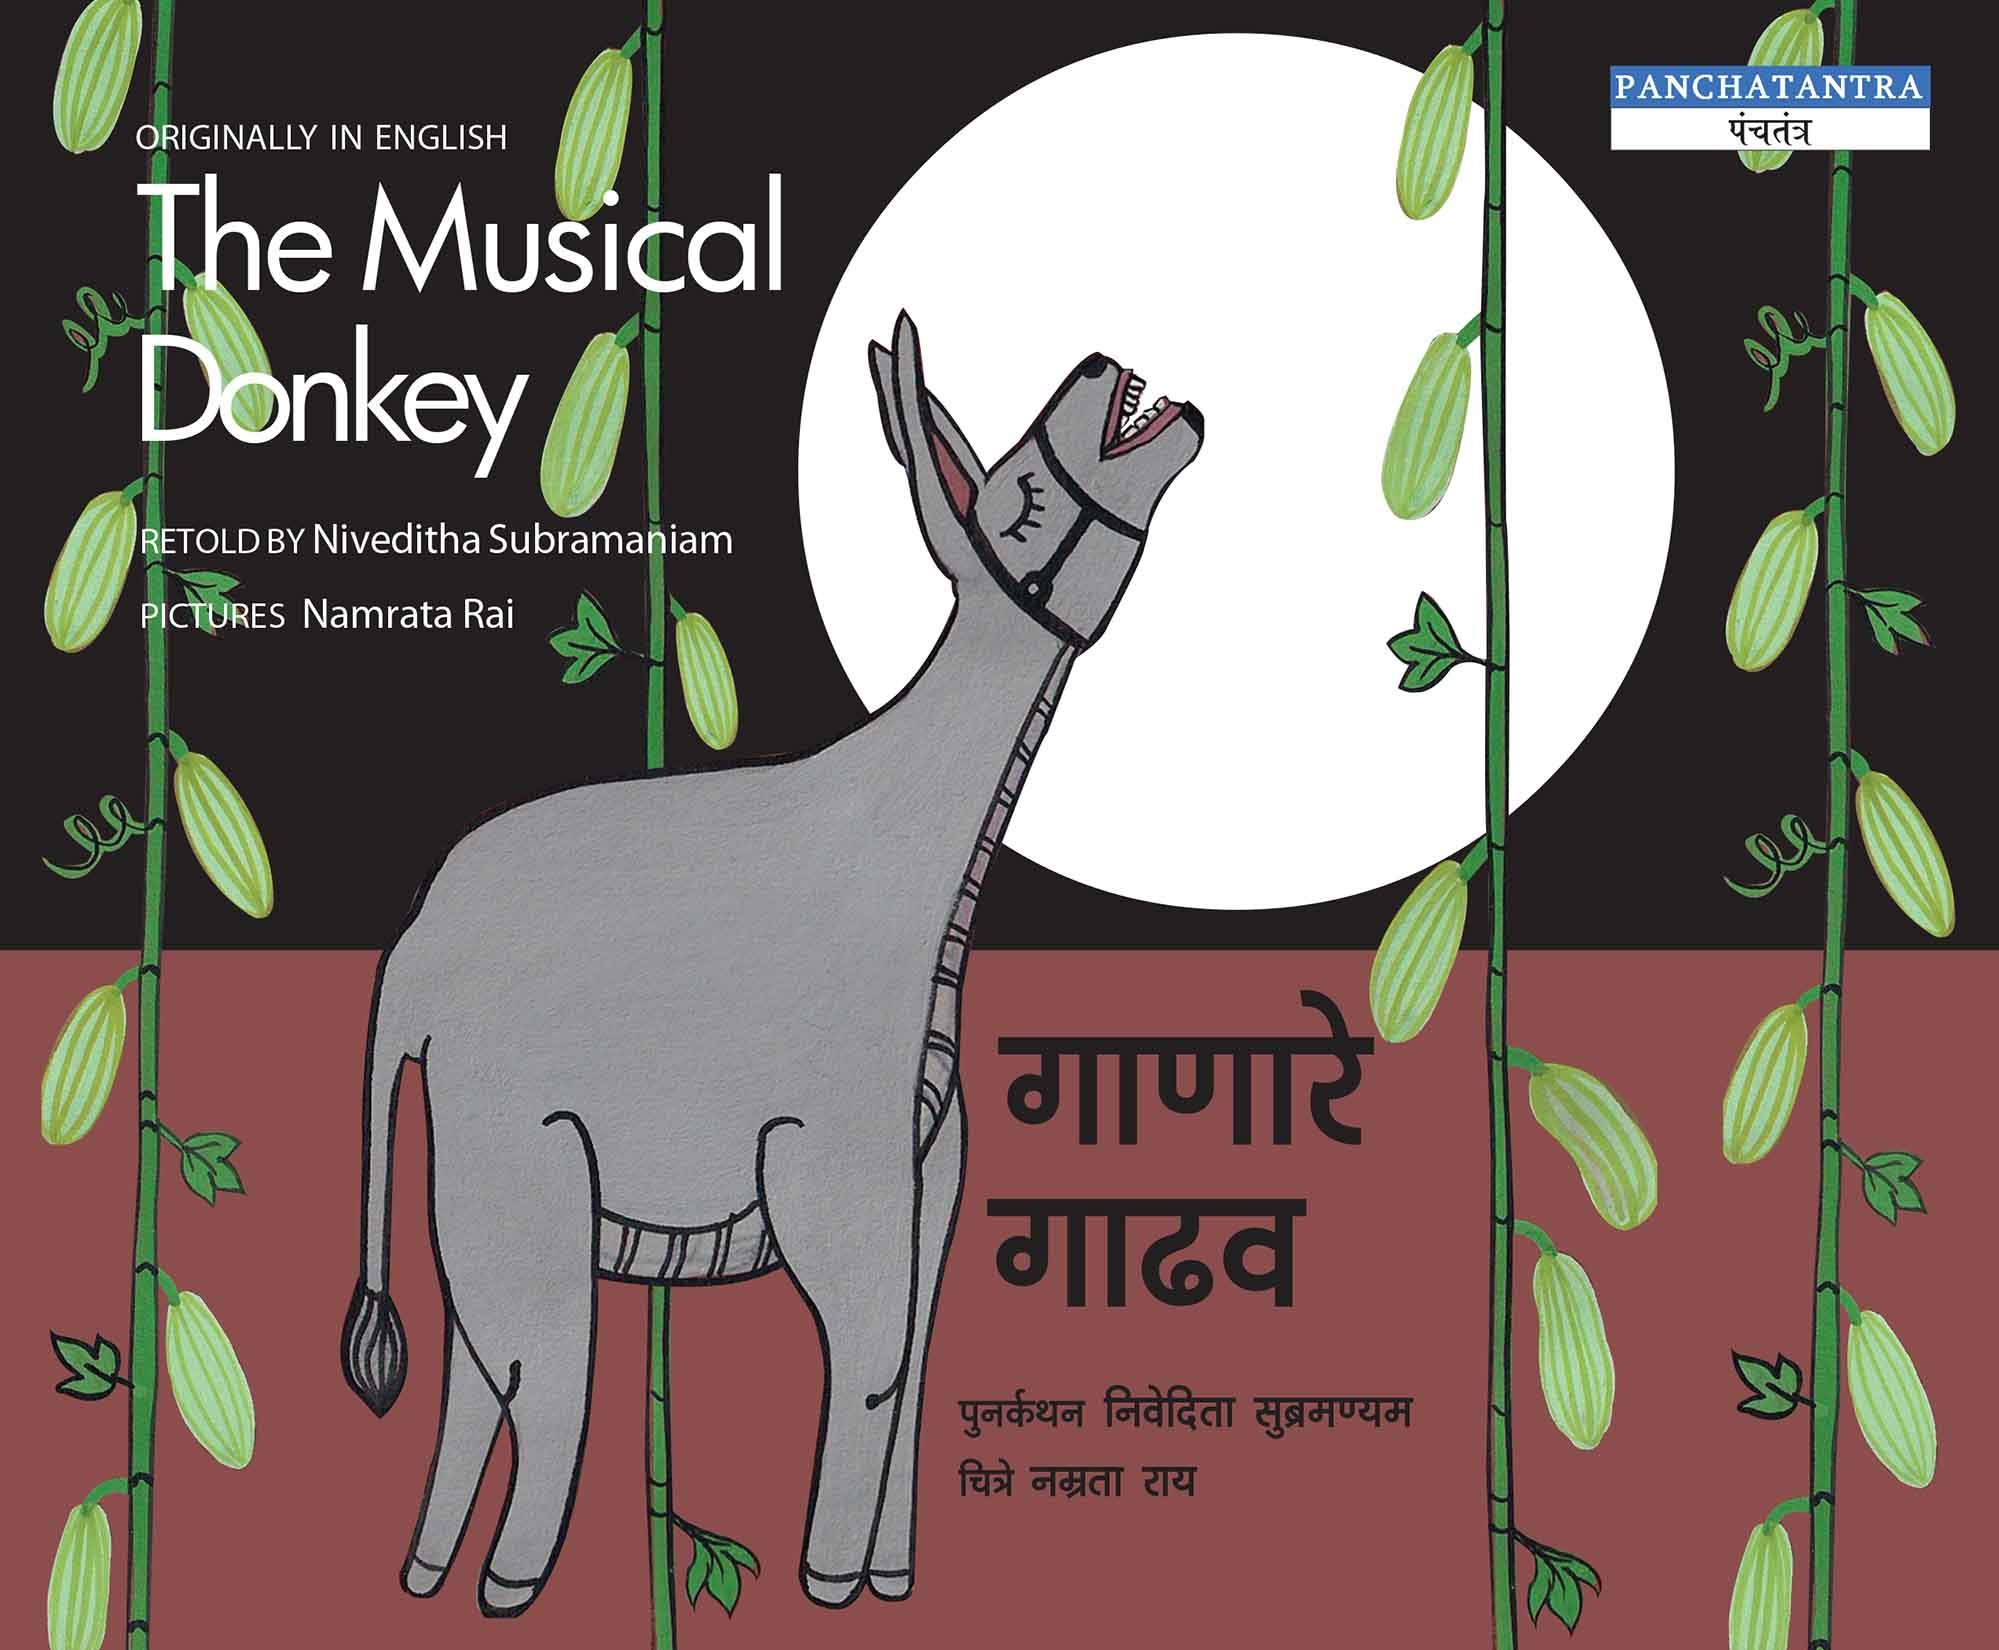 The Musical Donkey/Gaanaarey Gadhav (English-Marathi)